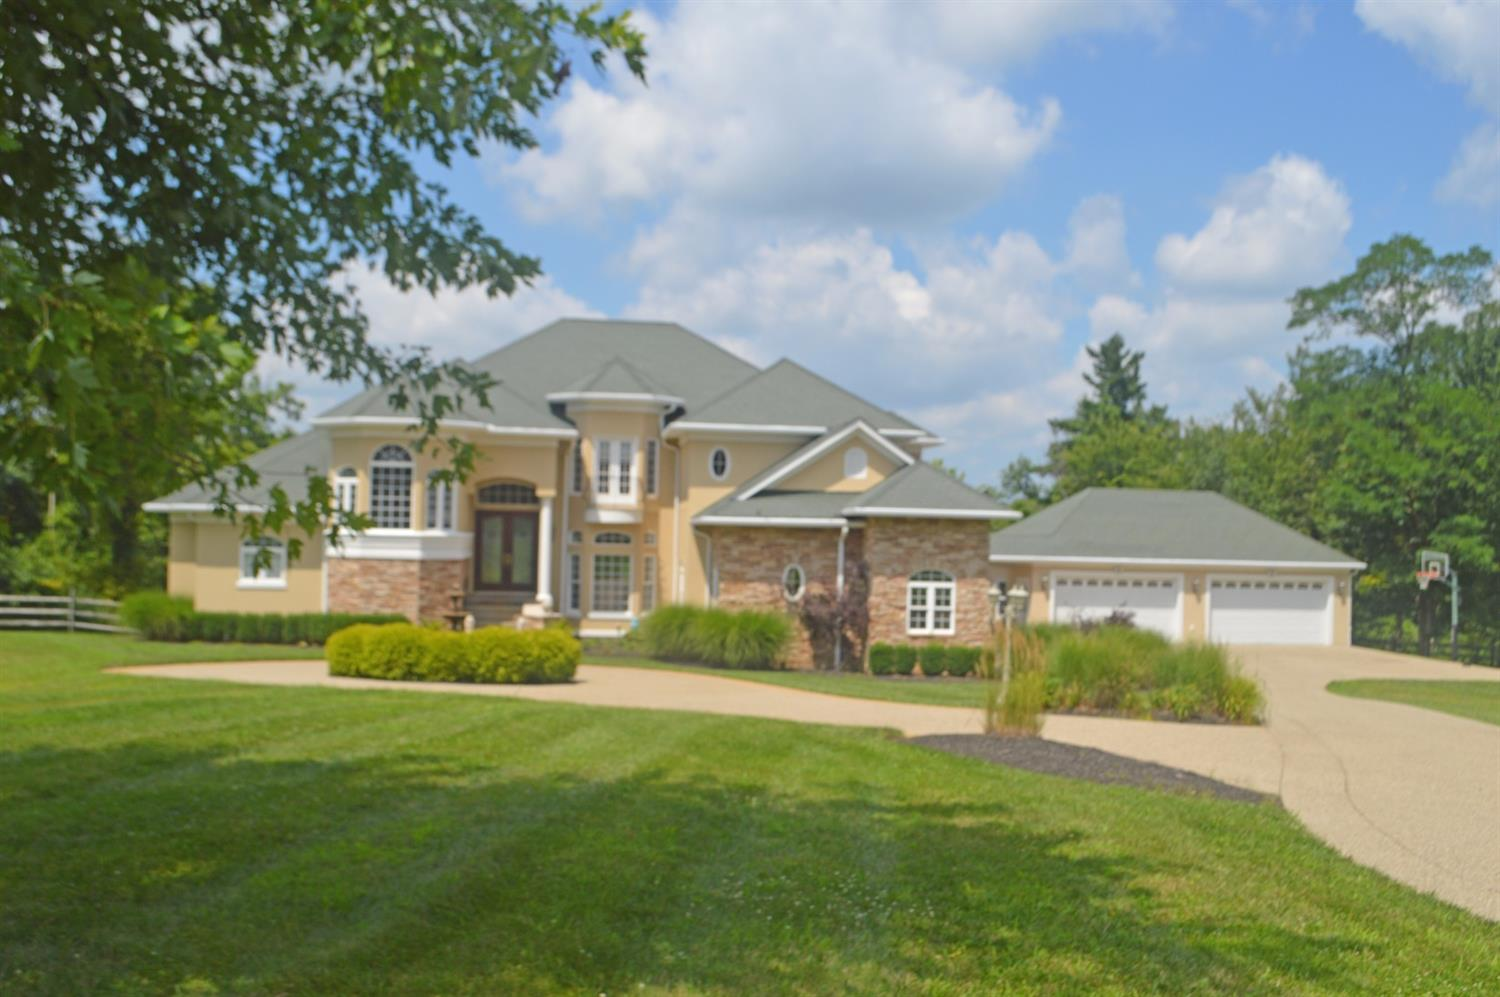 5051 Eagles View, Union Twp, OH 45244